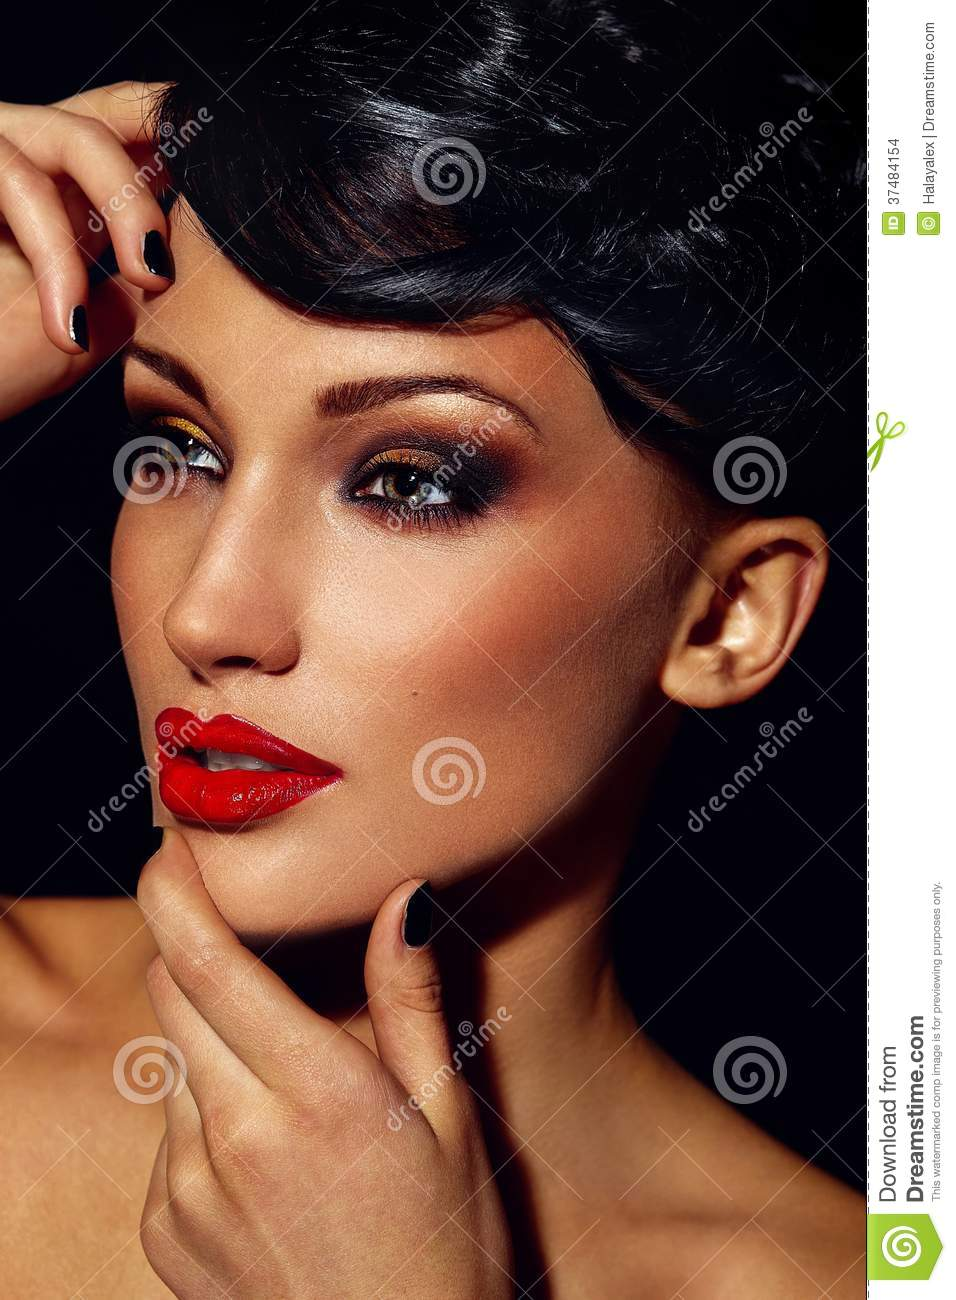 ce2201c2b High fashion look.glamor closeup portrait of beautiful stylish brunette  Caucasian young woman model with bright makeup